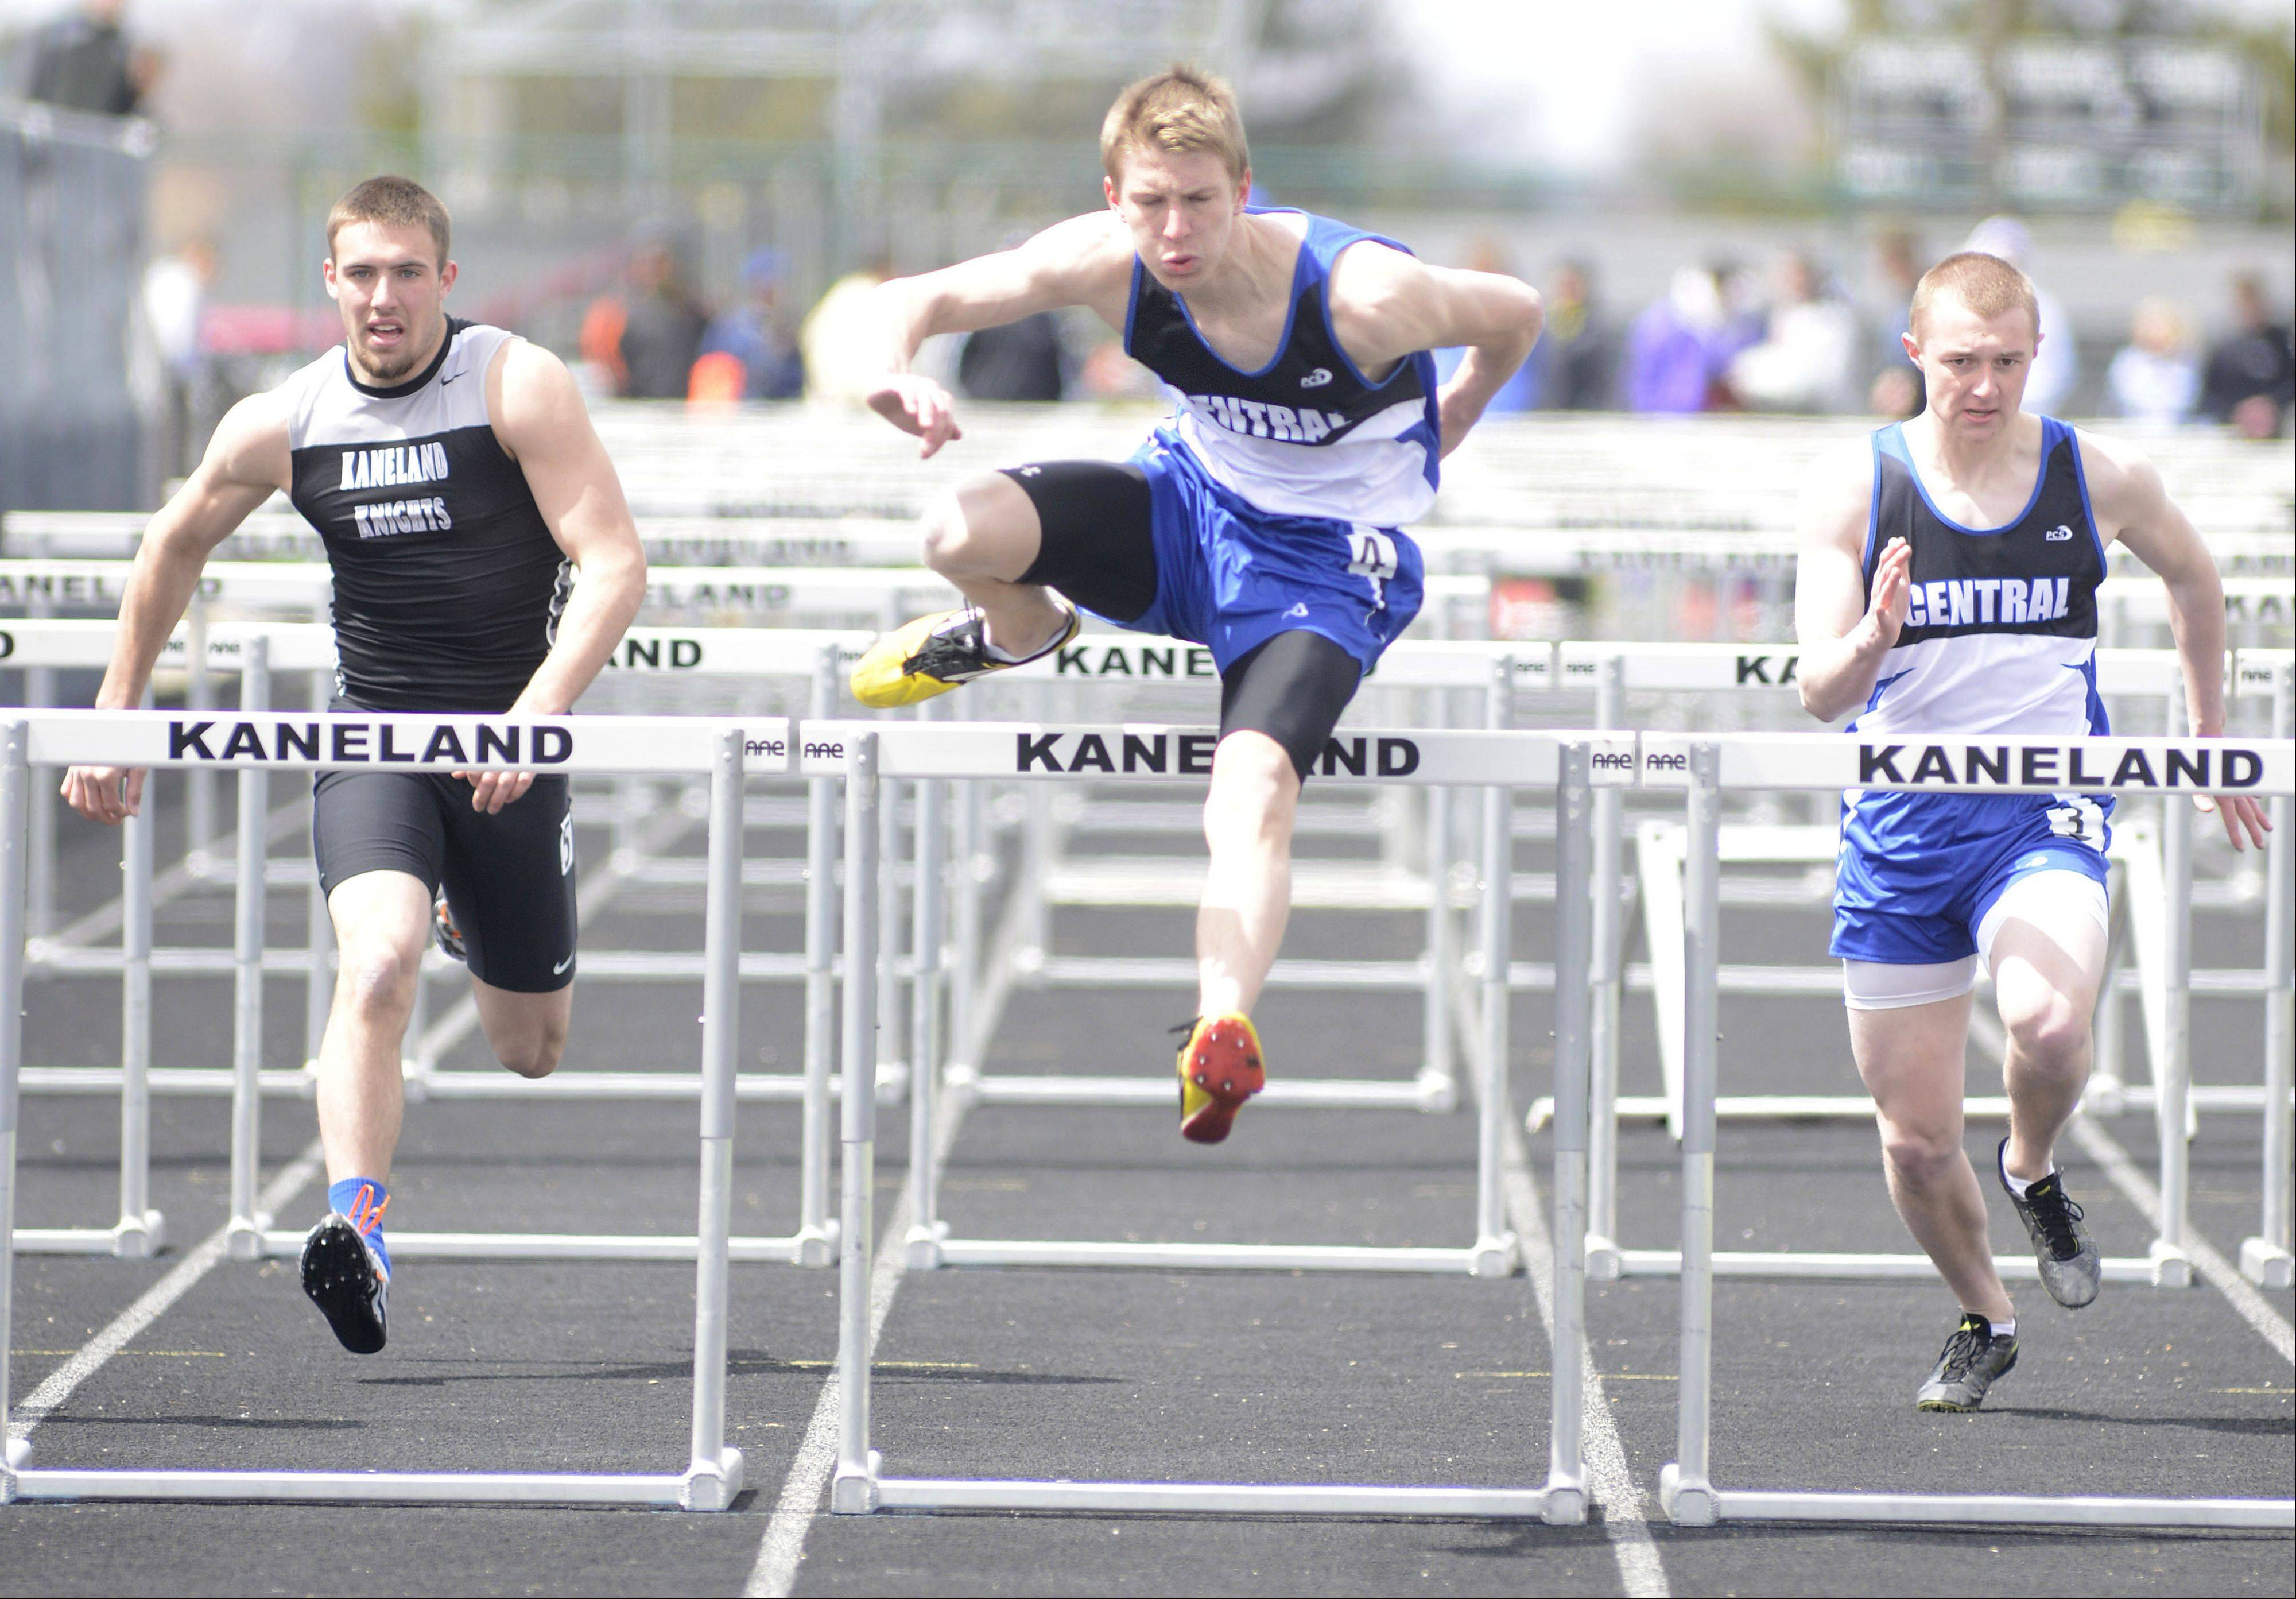 Burlington Central�s Lucas Ege takes first in the 110-meter hurdles at Kaneland�s Peterson Prep meet on Saturday.